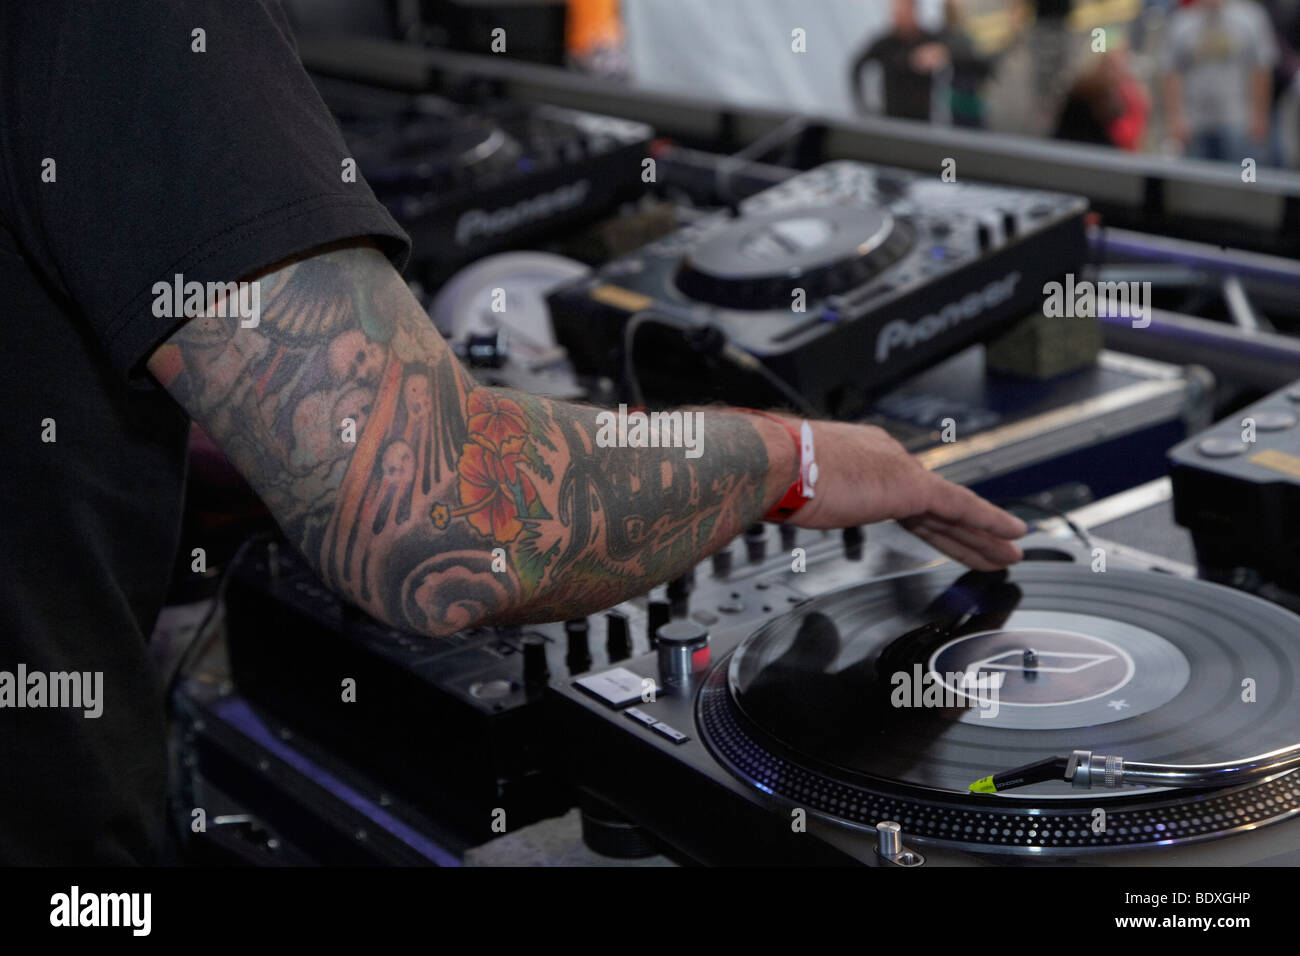 Techno Nature One Festival 2009, DJ Dag, Kastellaun, Rhineland-Palatinate, Germany, Europe - Stock Image